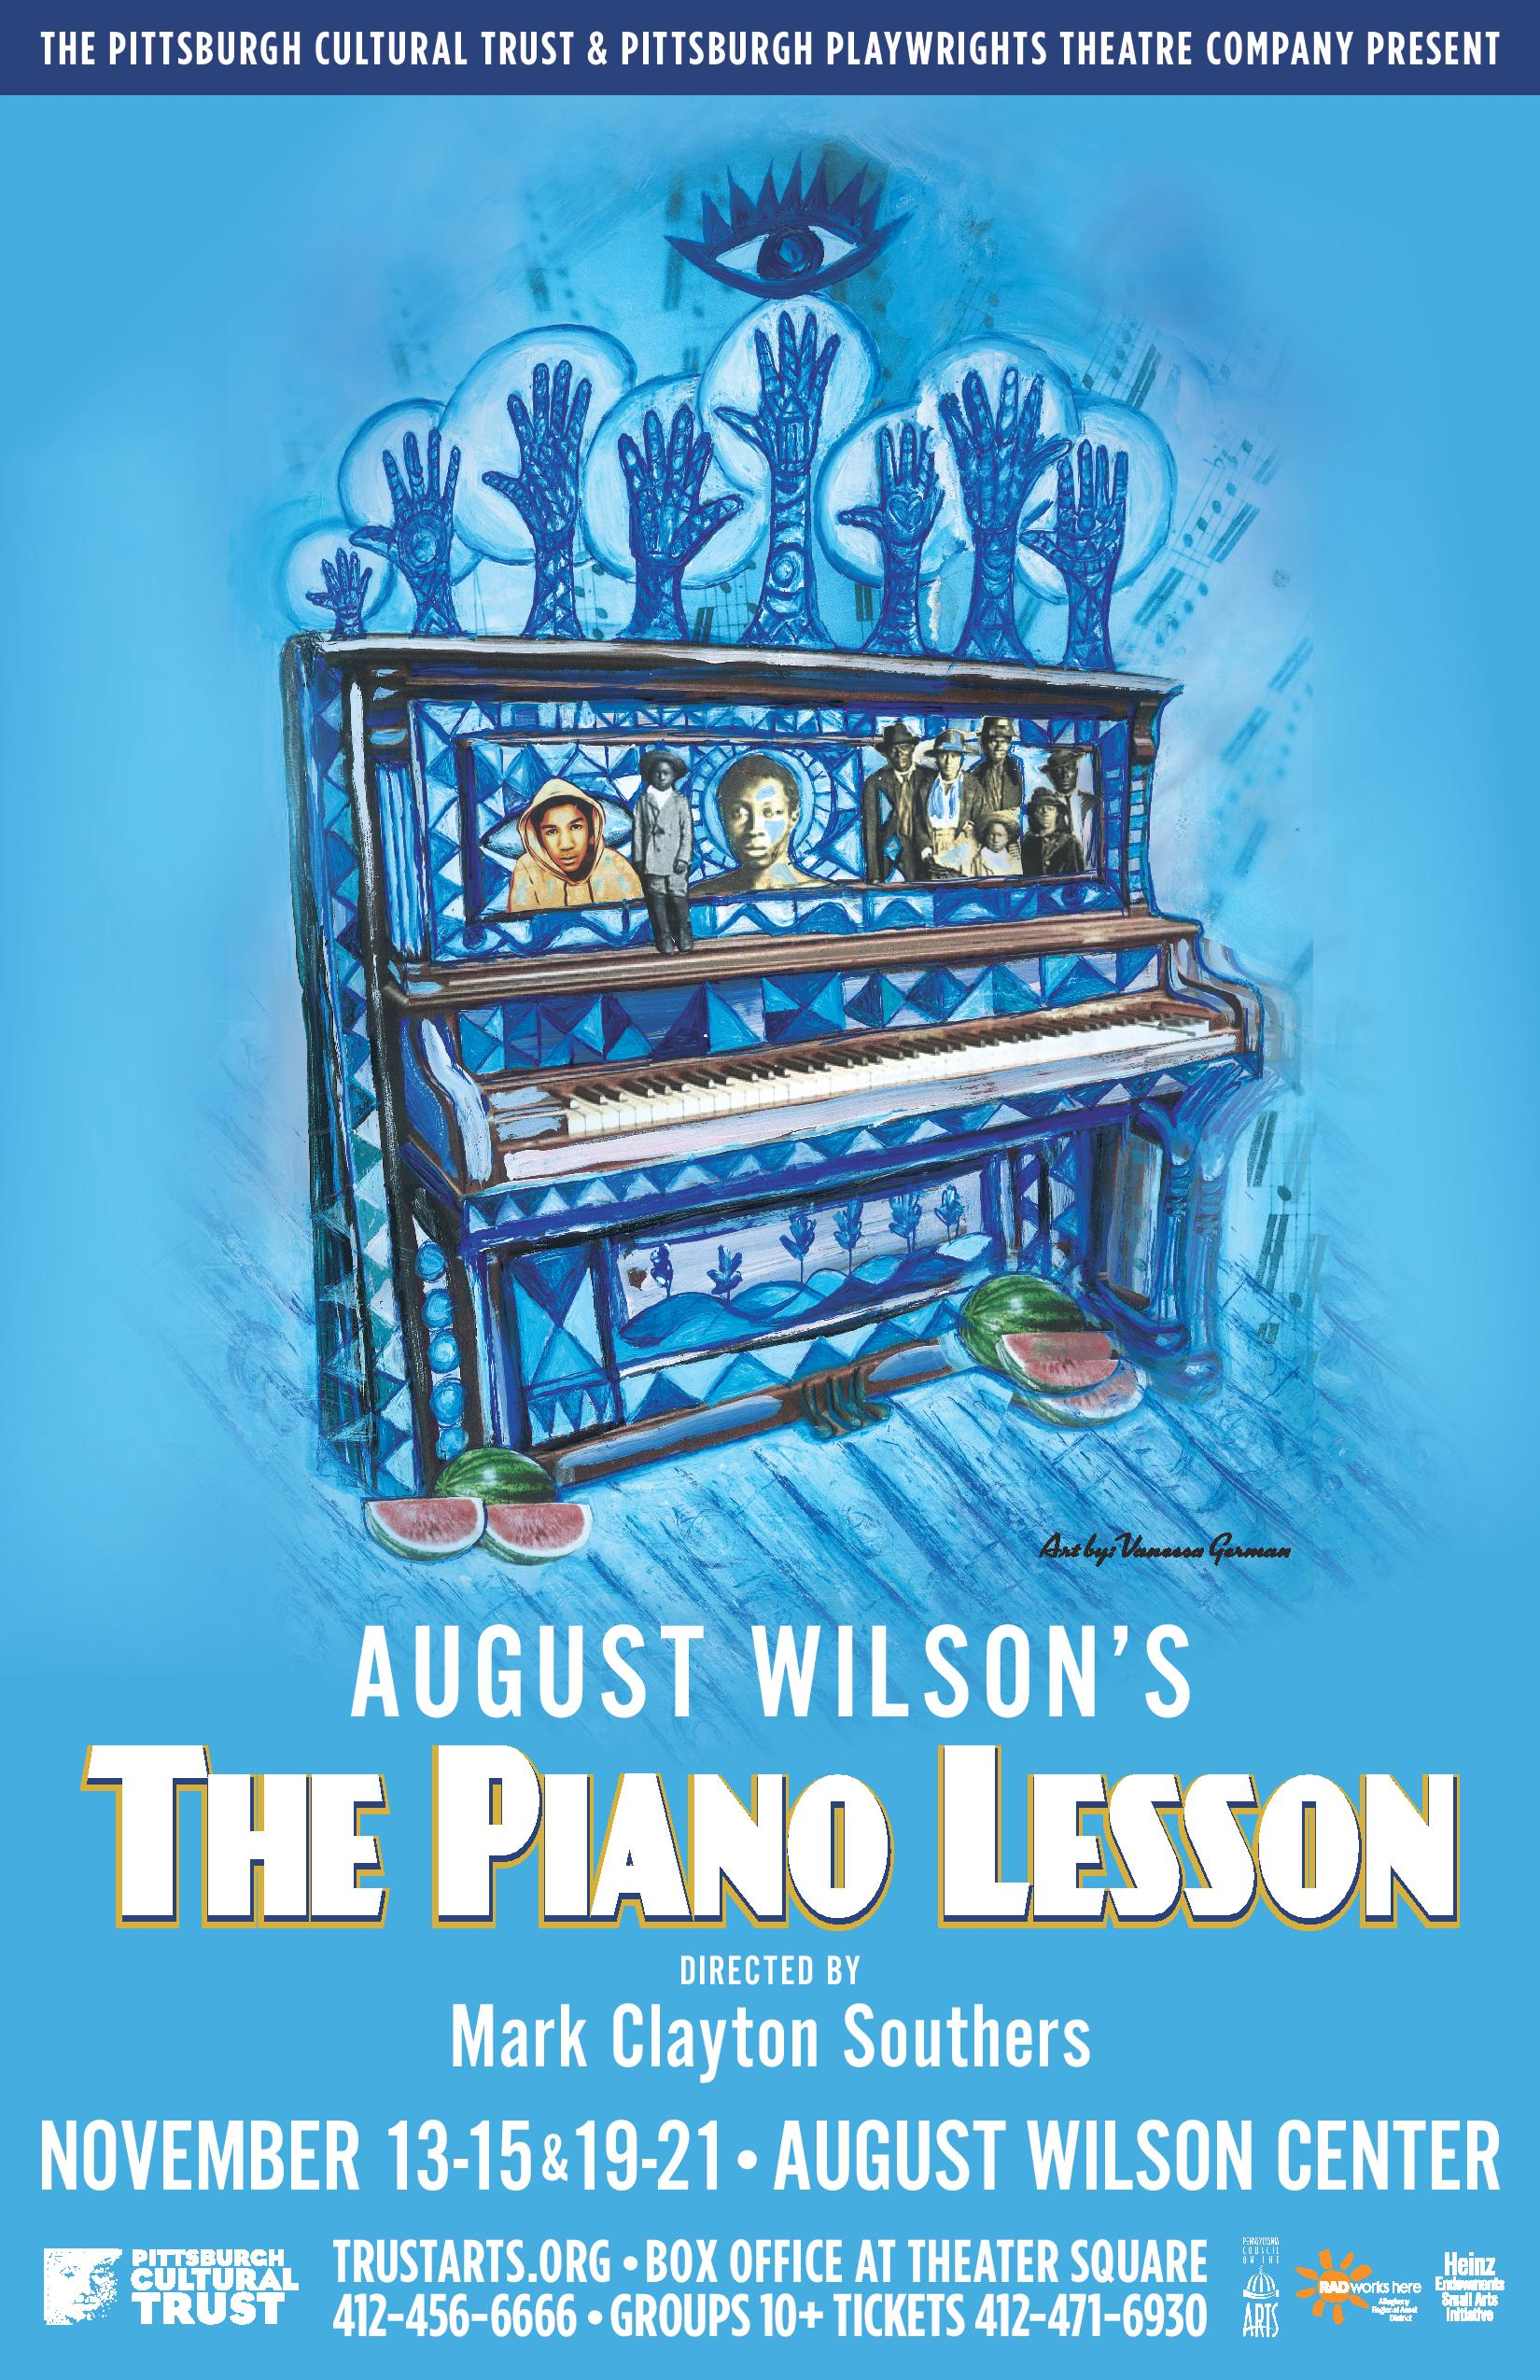 american commerce and materialism in the piano lesson a play by august wilson August wilson's seminal cycle l scott caldwell won a tony award for best featured actress in a play 5 the piano lesson american masters — august wilson.